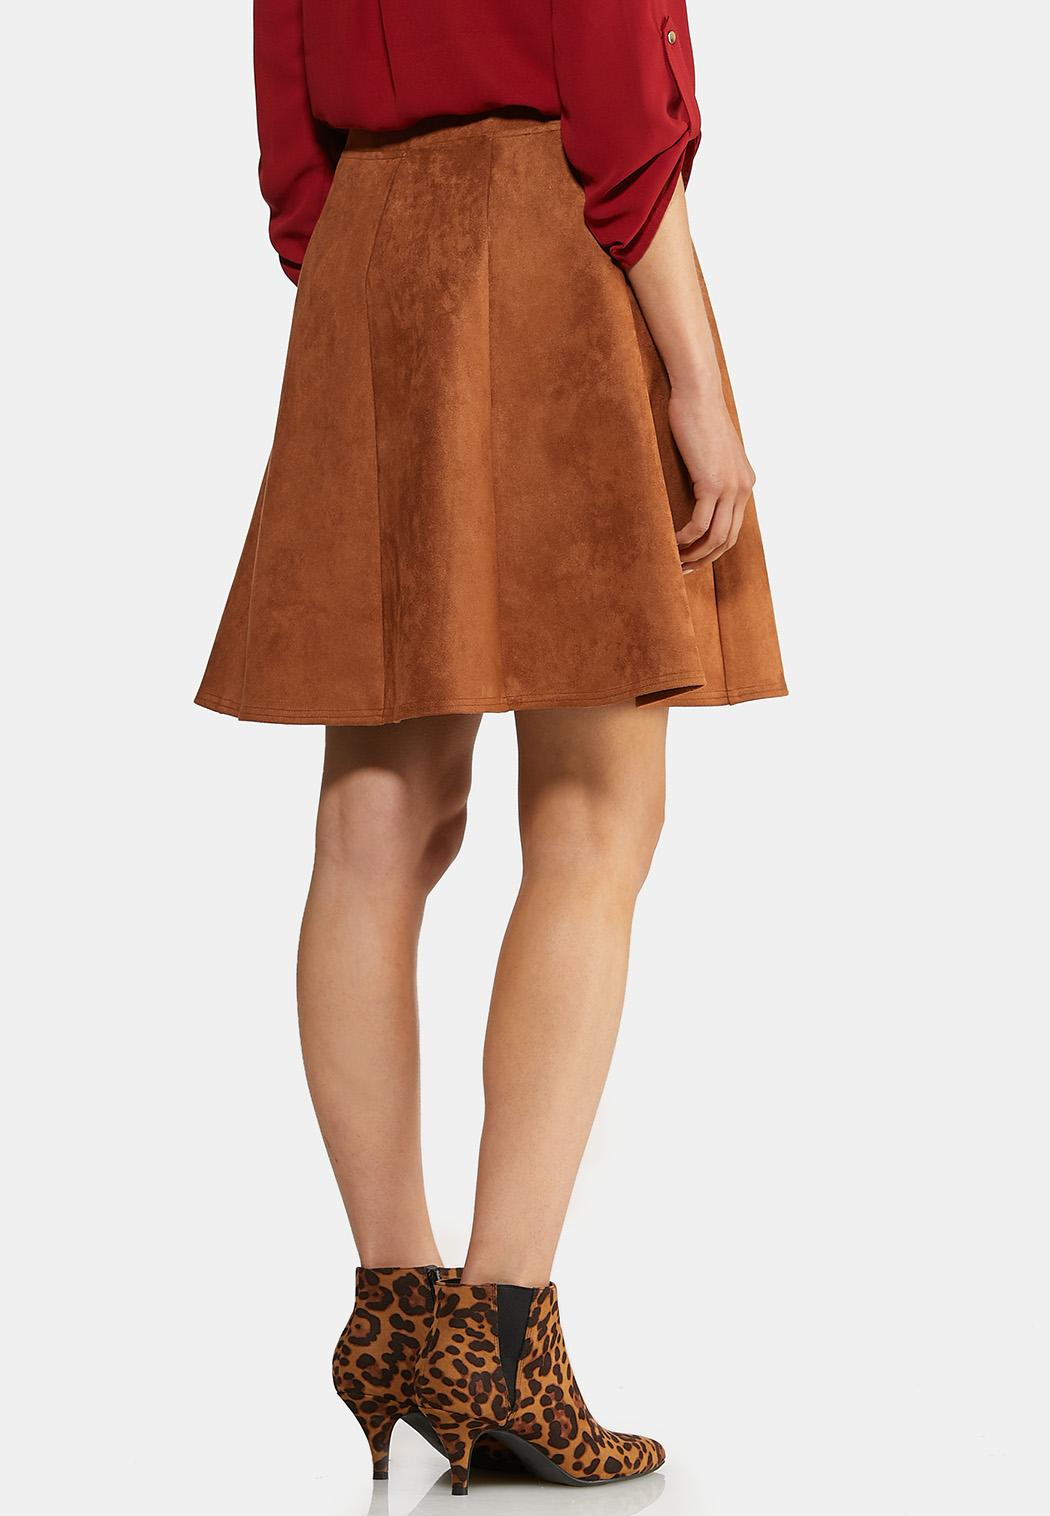 Faux Suede Mini Skirt (Item #43957481)